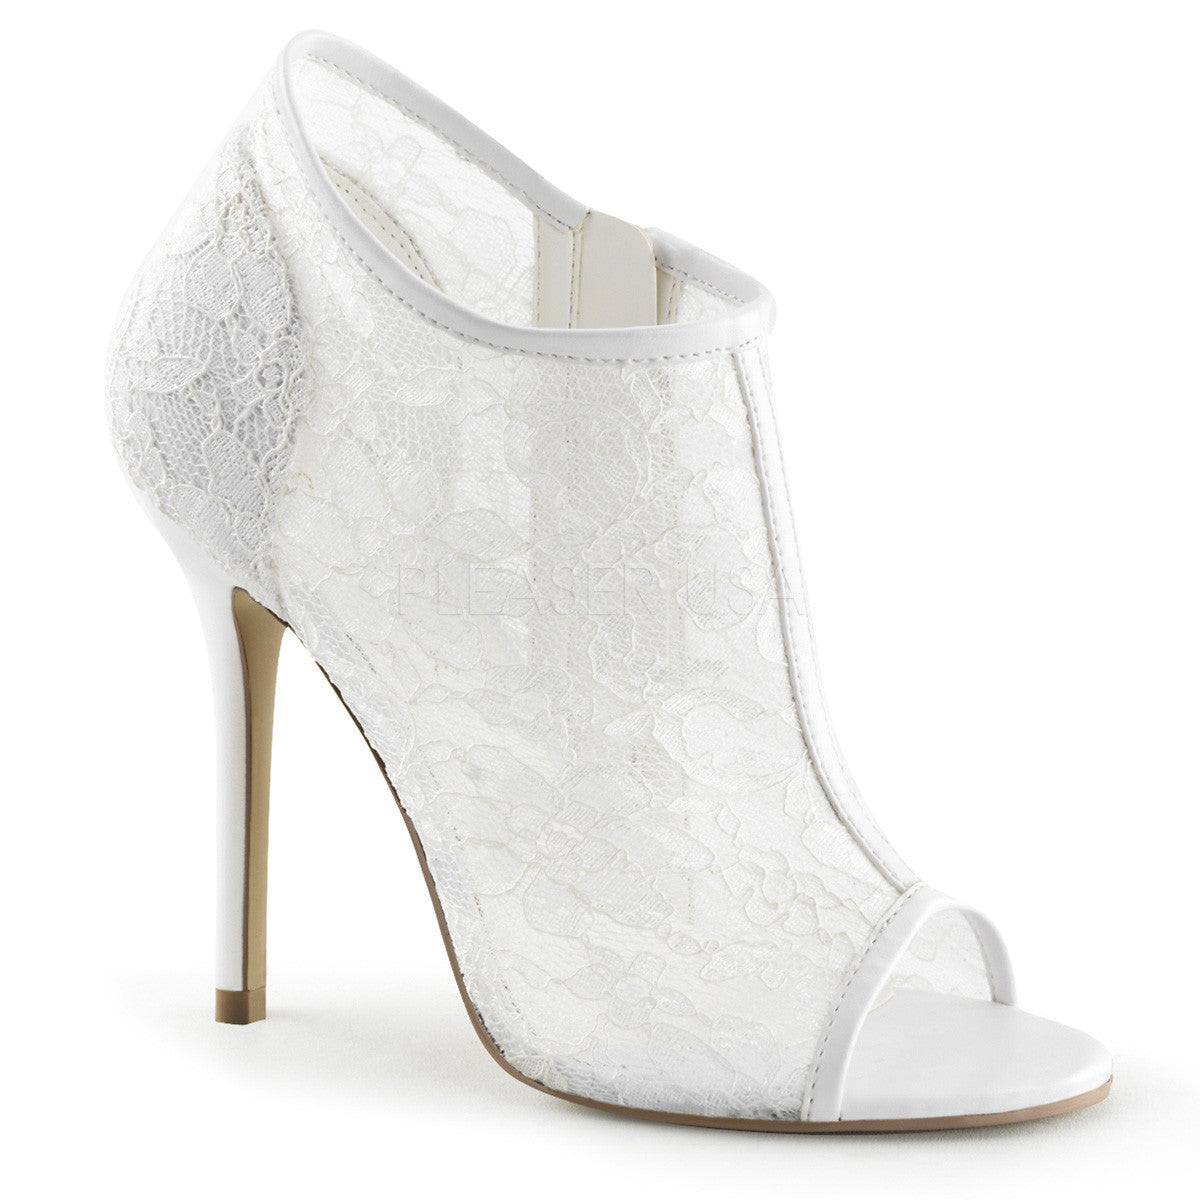 Fabulicious High Heel Booties Amuse-56 ivory